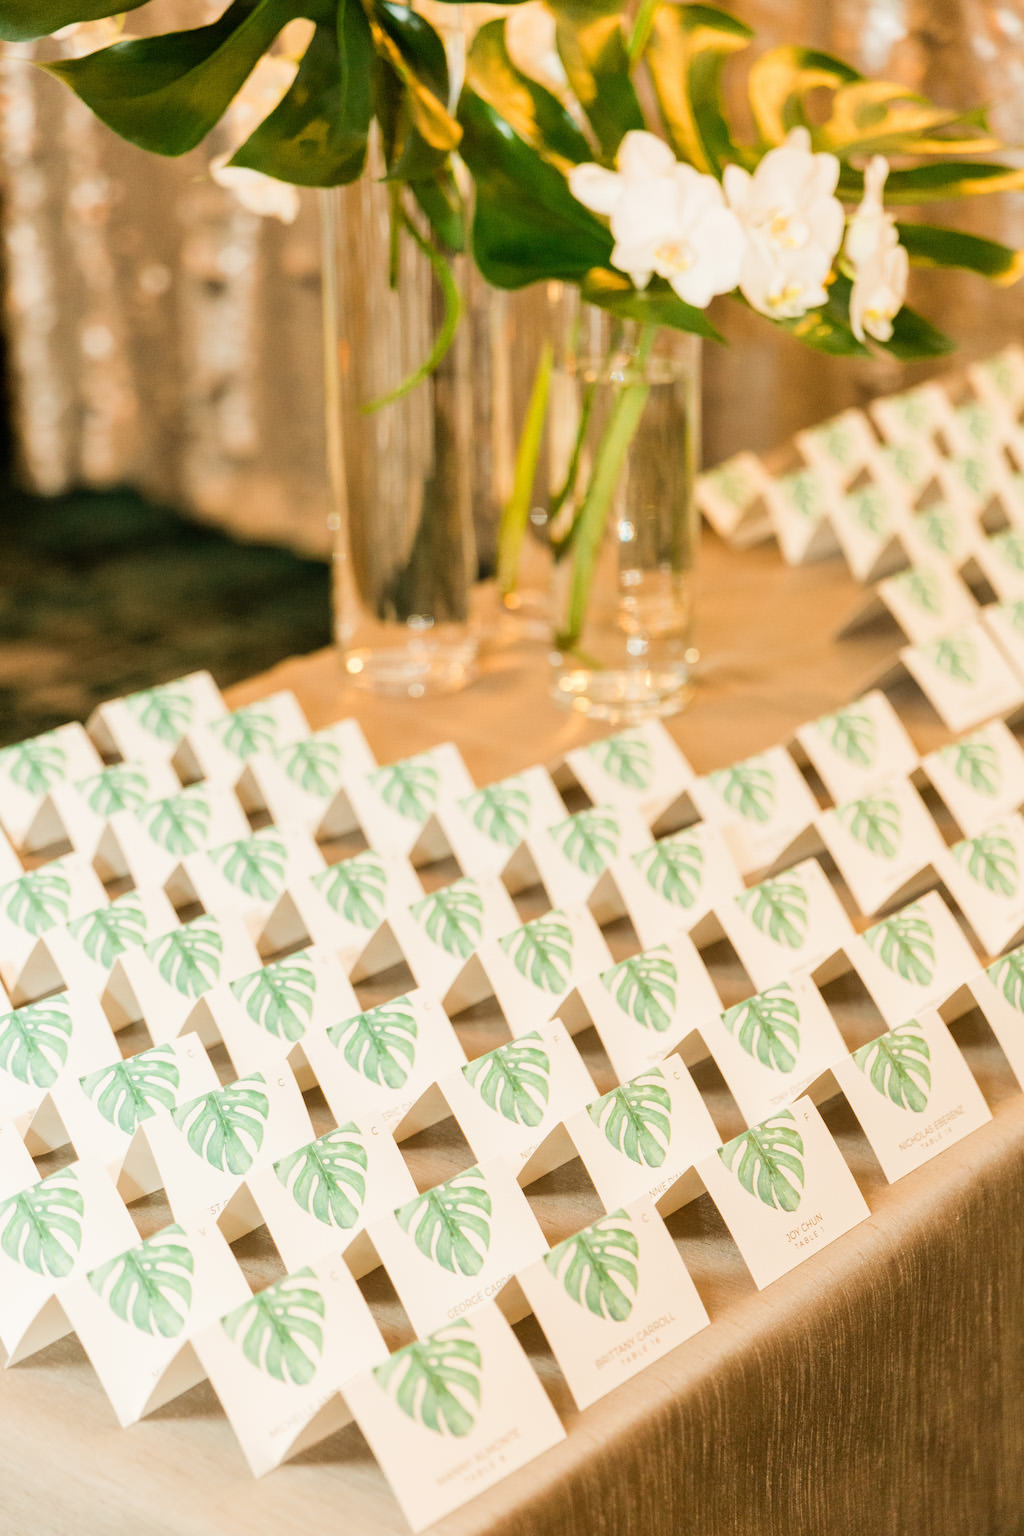 Tropical Inspired, Modern Florida Wedding Reception Decor, Green Monstera Leaf Escort Seating Card with White Orchid Florals | Tampa Bay Invitation and Wedding Suite Designer URBANCoast | Florida Luxury Wedding Planner Parties A'La Carte